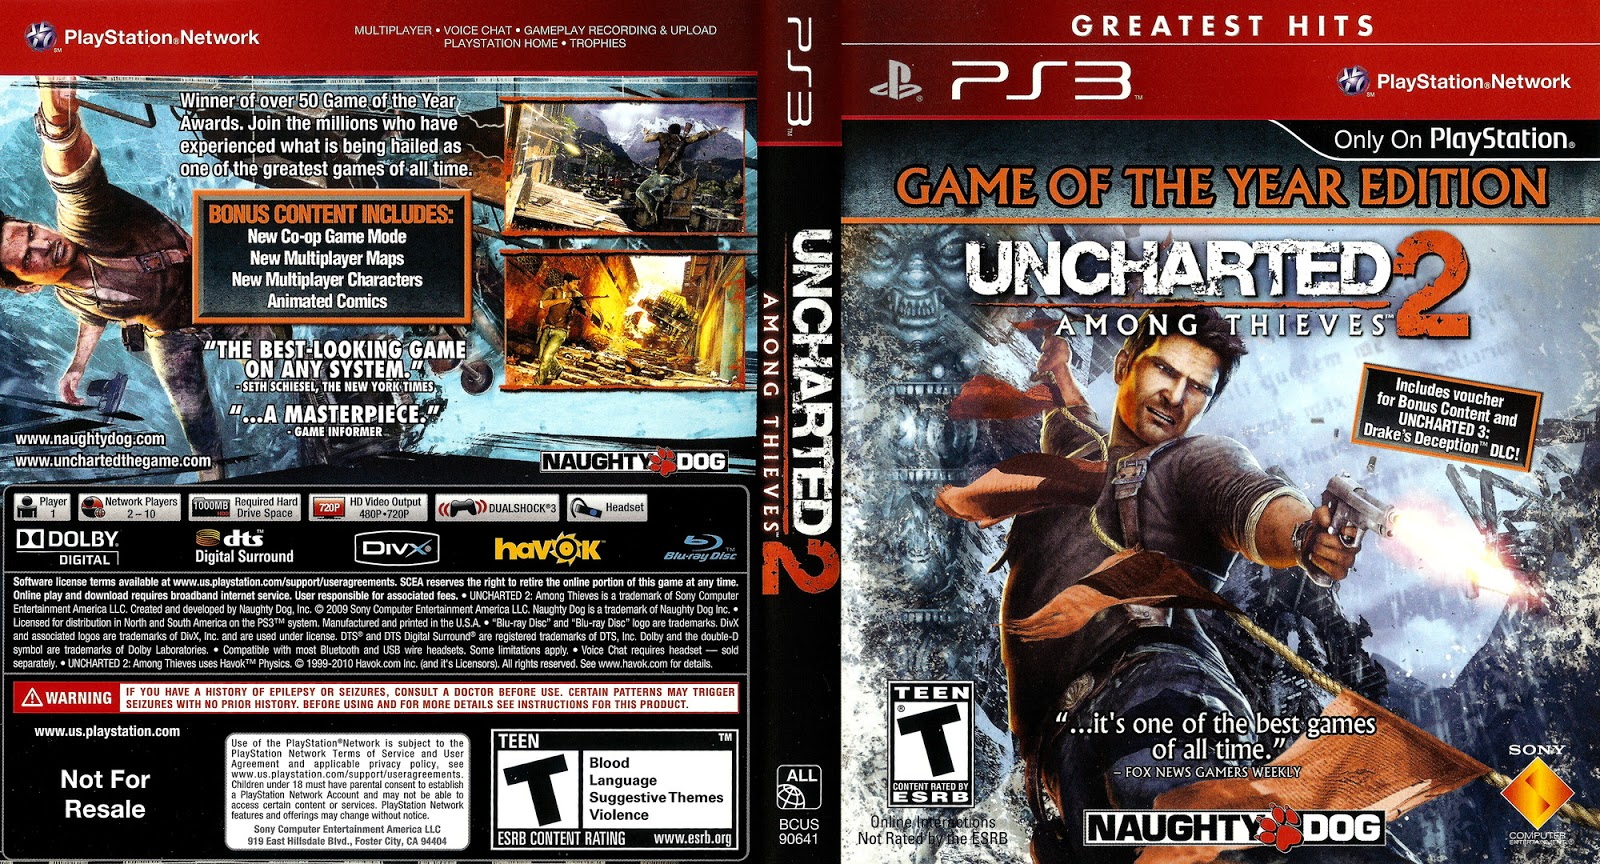 Uncharted 2: Among Thieves Box Shot for PlayStation 3 - GameFAQs